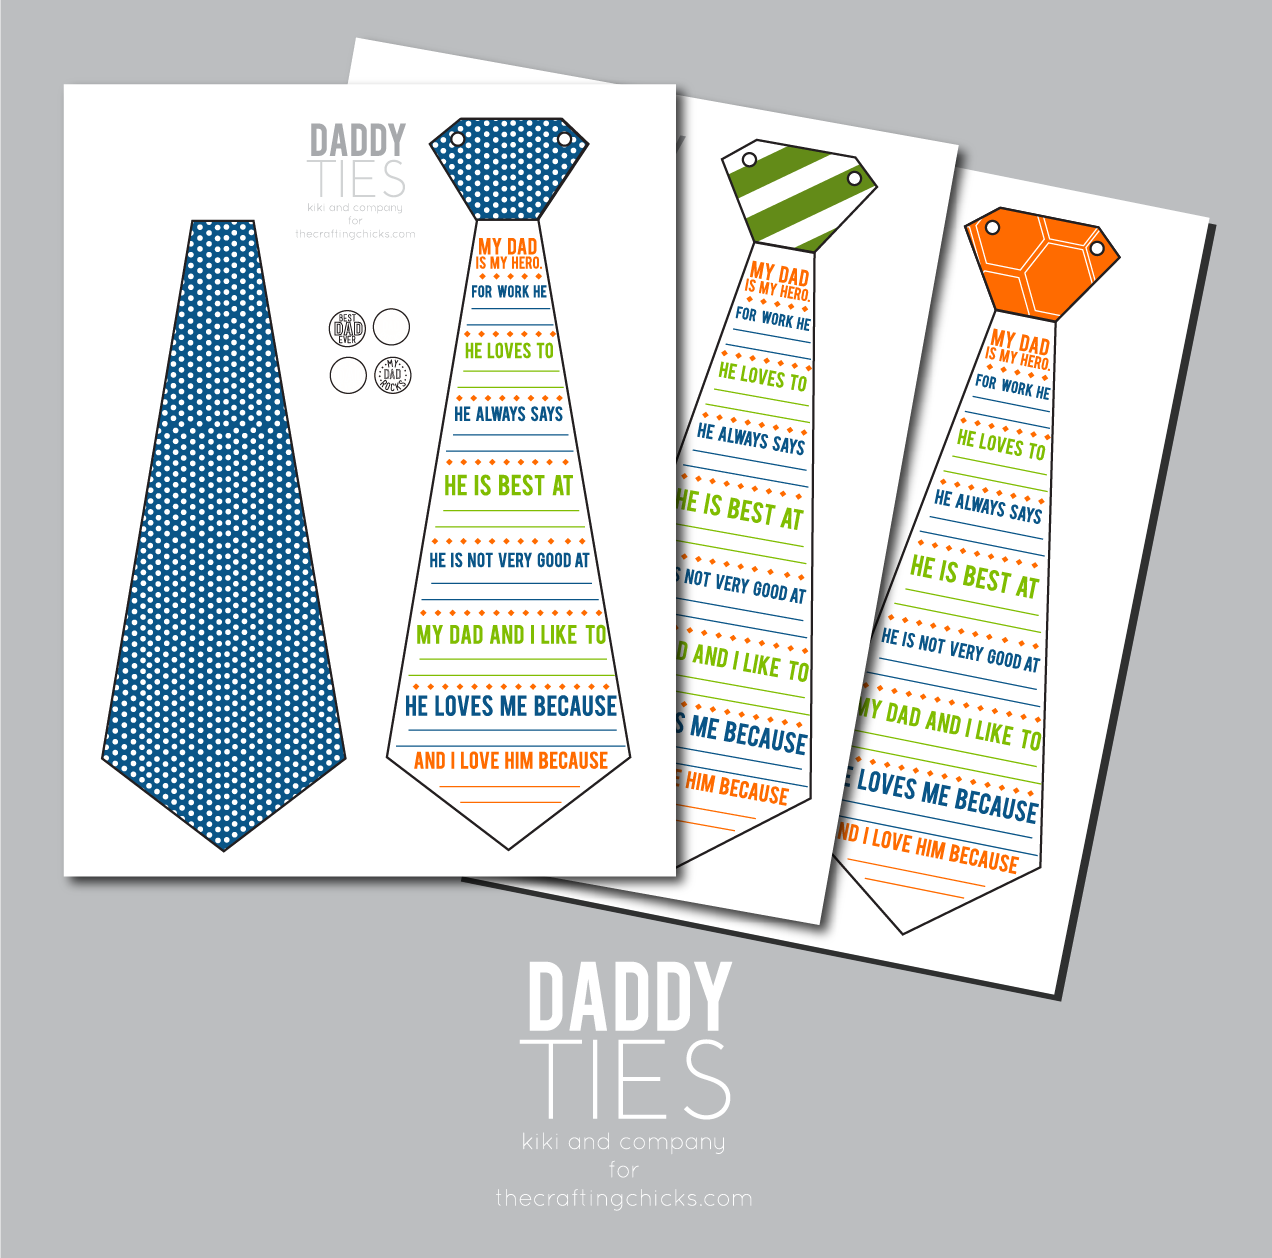 photograph regarding Father's Day Tie Template Printable named Daddy Ties- A Fathers Working day Printable Card - Kiki Business enterprise